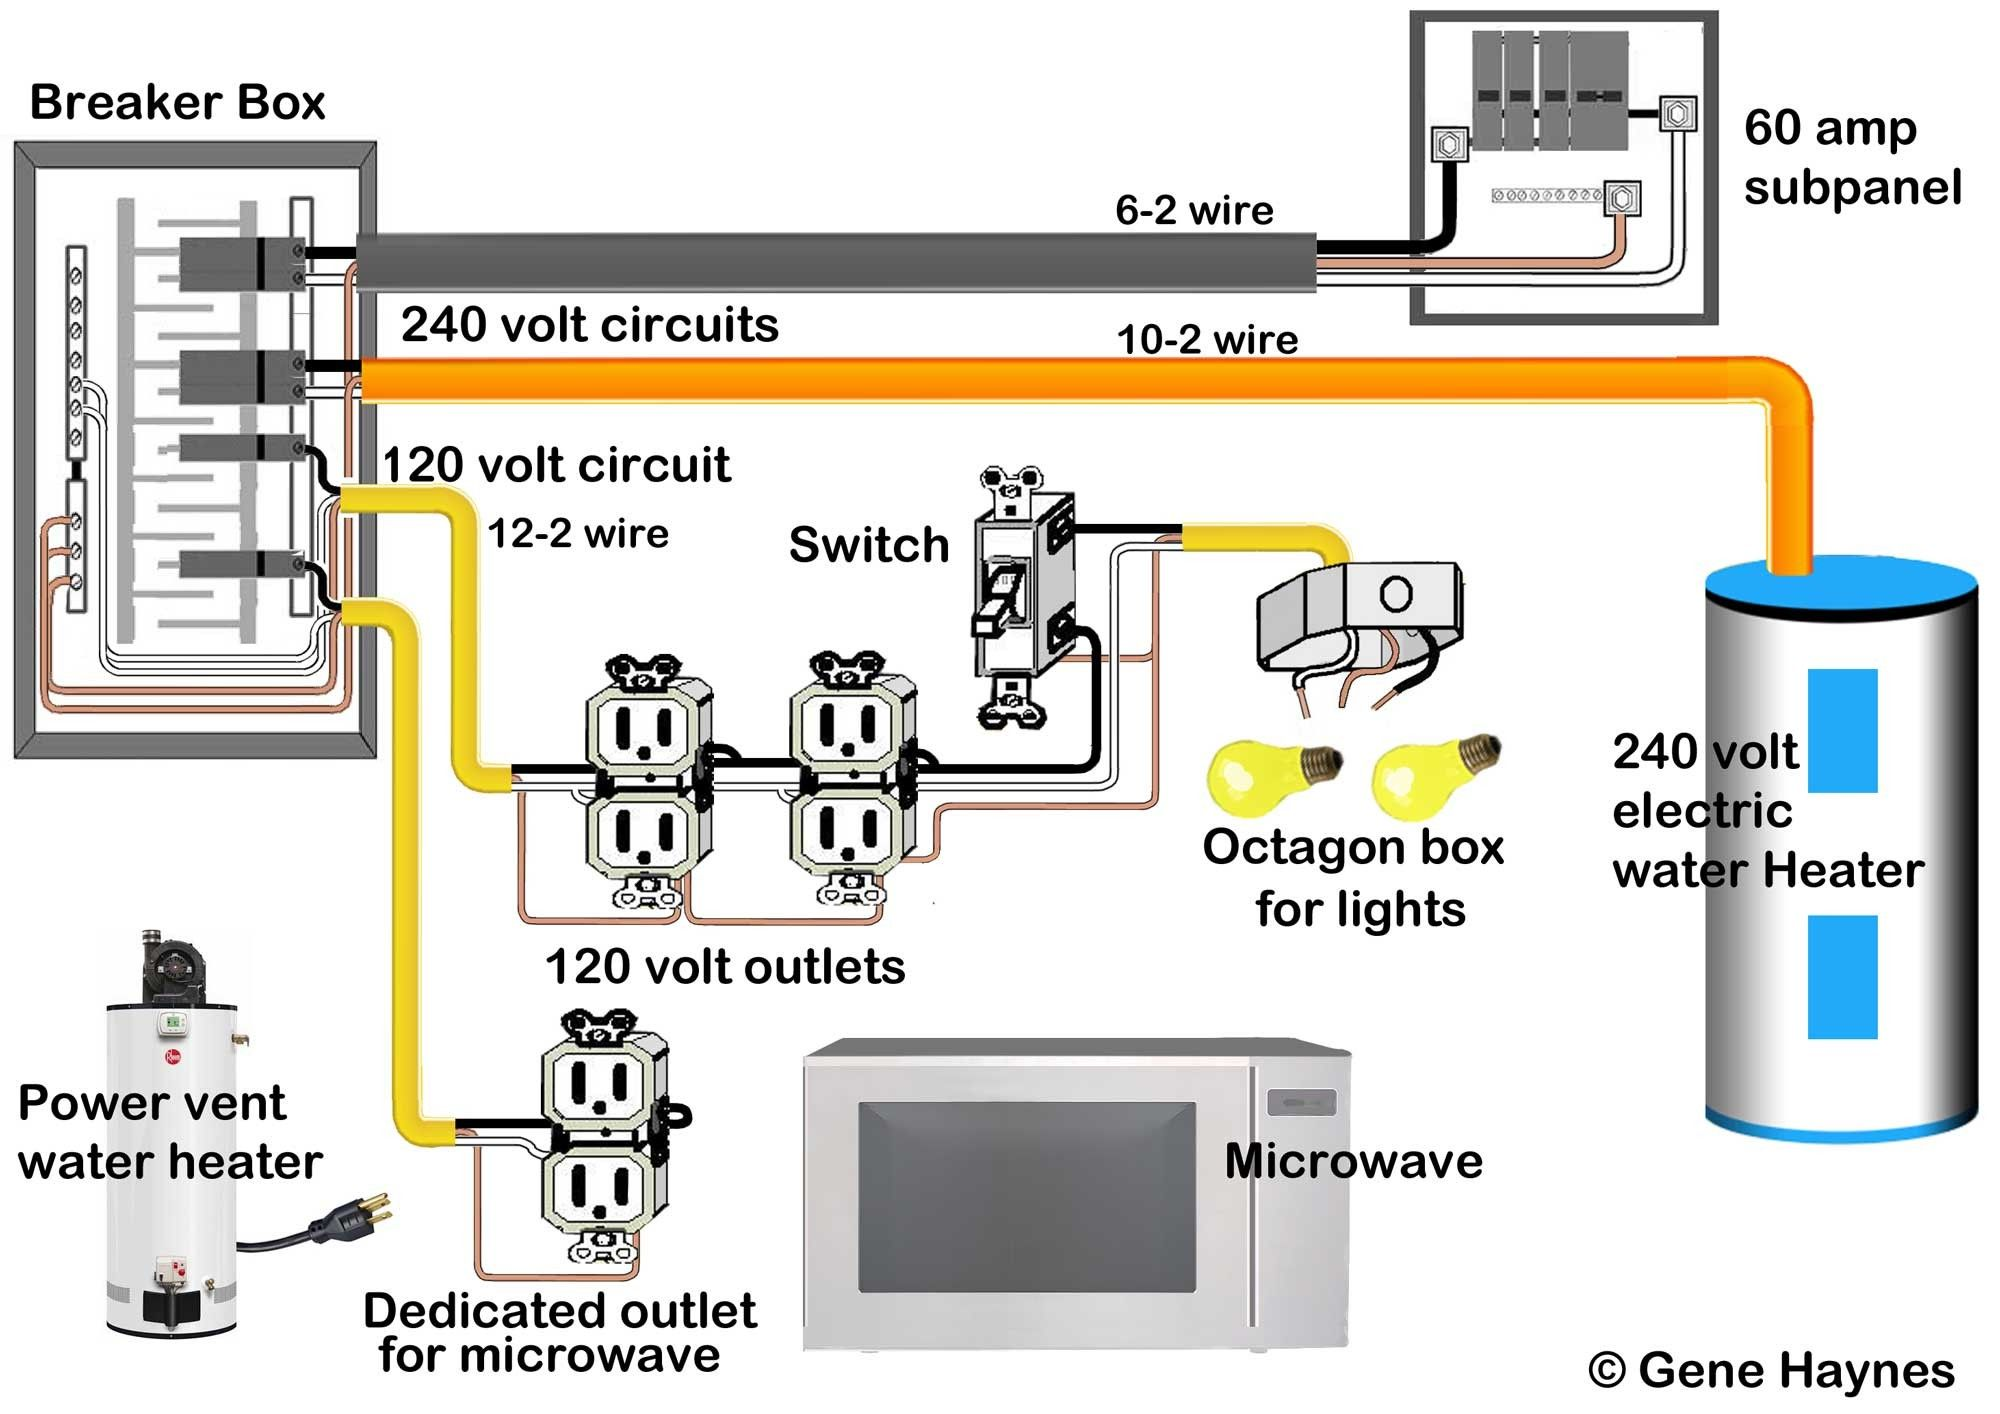 New Wiring Diagram Immersion Heater Switch Outlet Wiring House Wiring Electrical Circuit Diagram